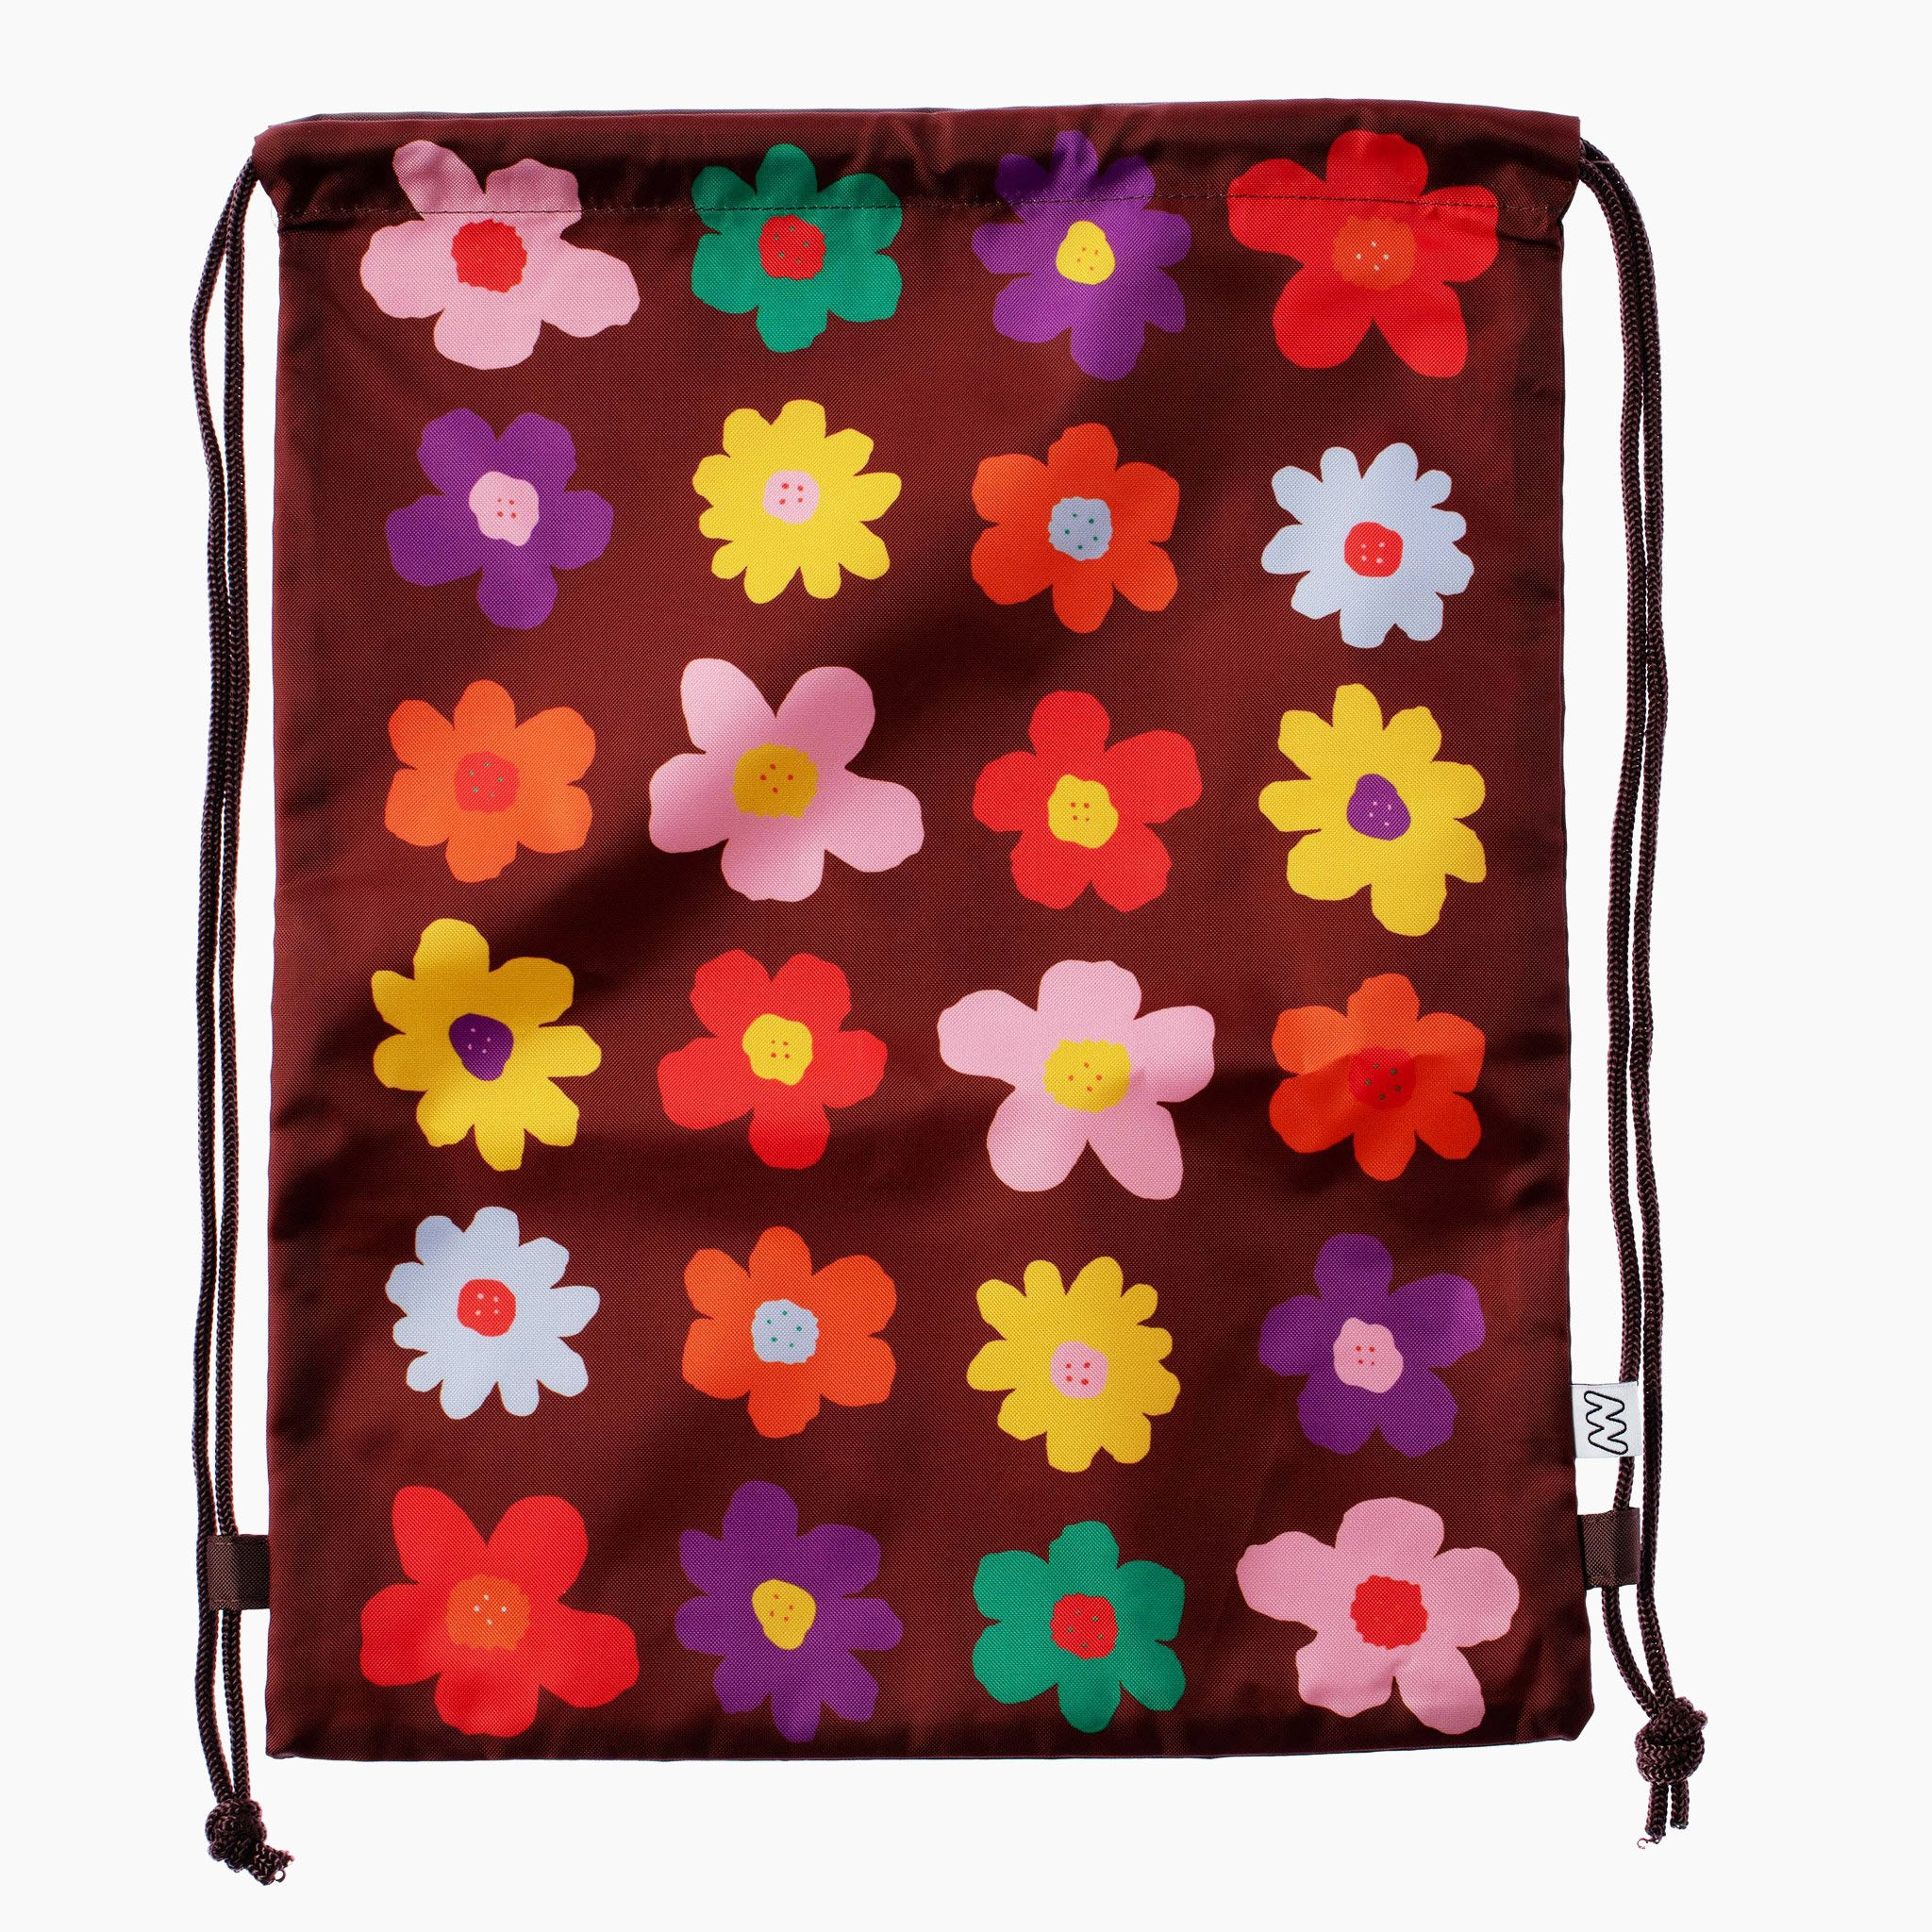 Retro Flower Drawstring Bag